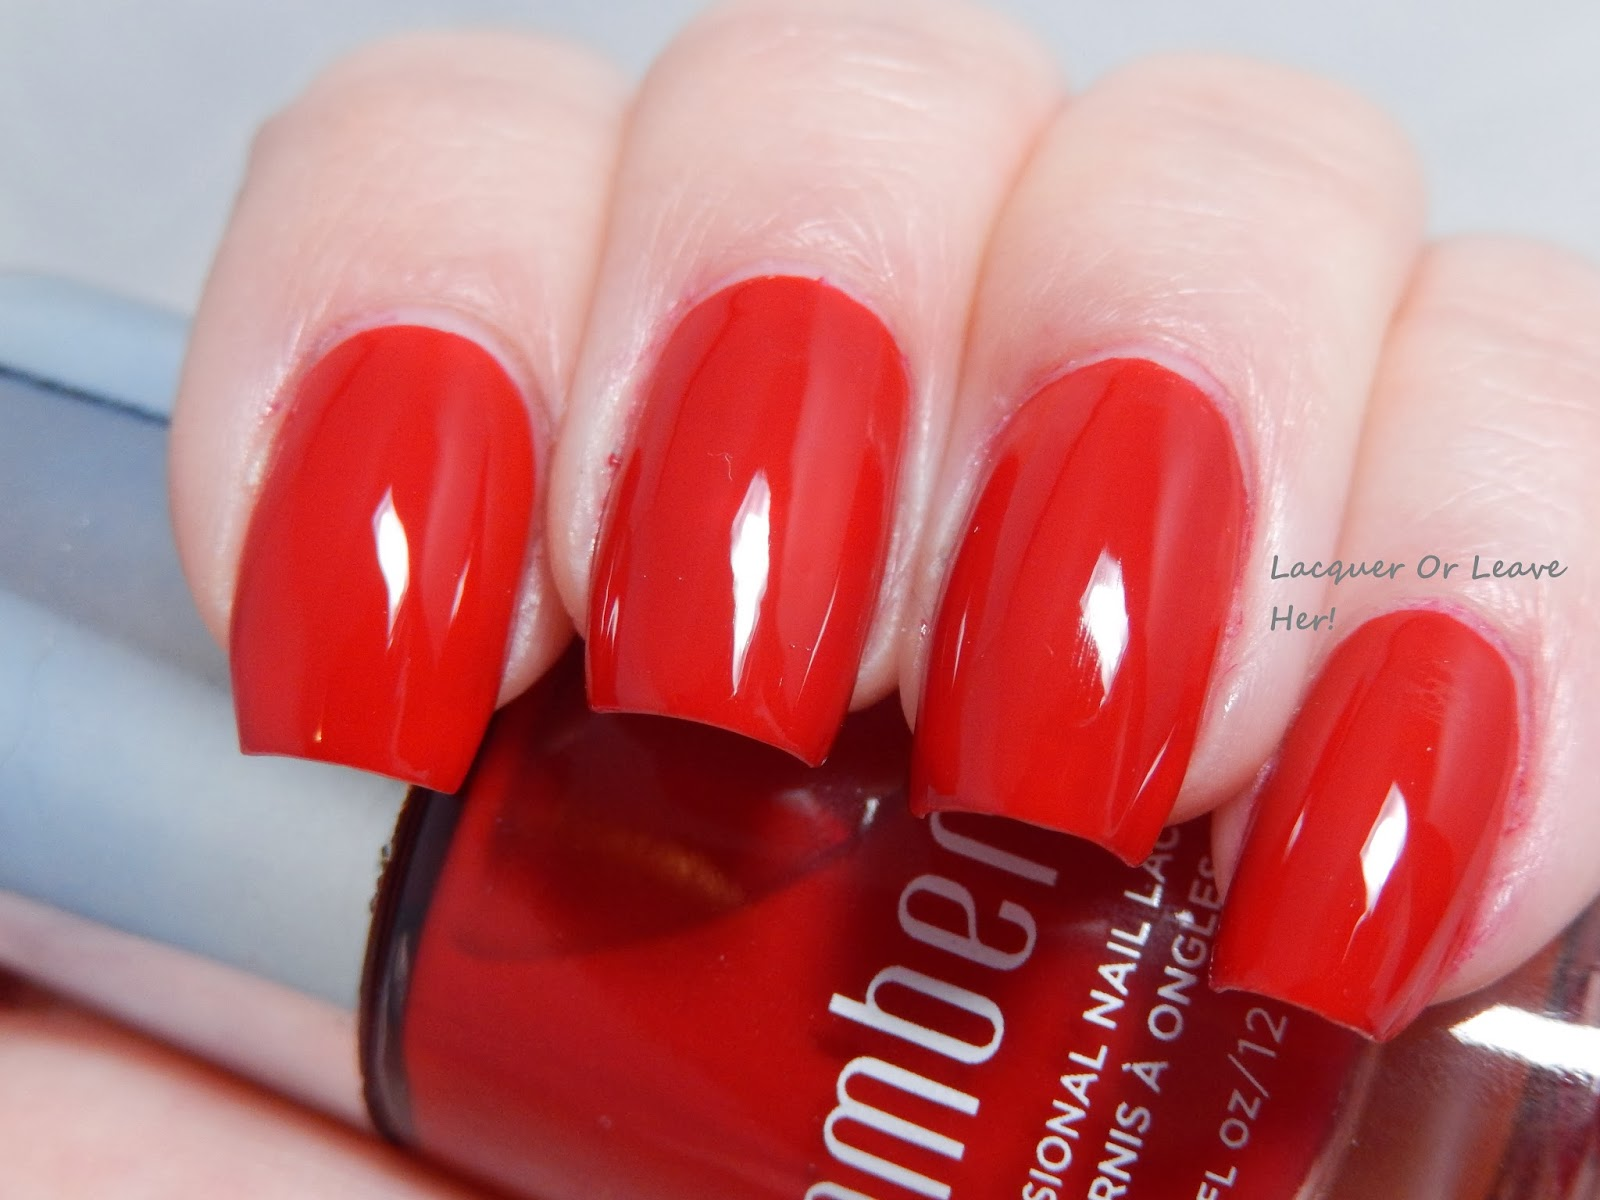 Lacquer or Leave Her!: Review + Before & After: Jamberry Cardinal